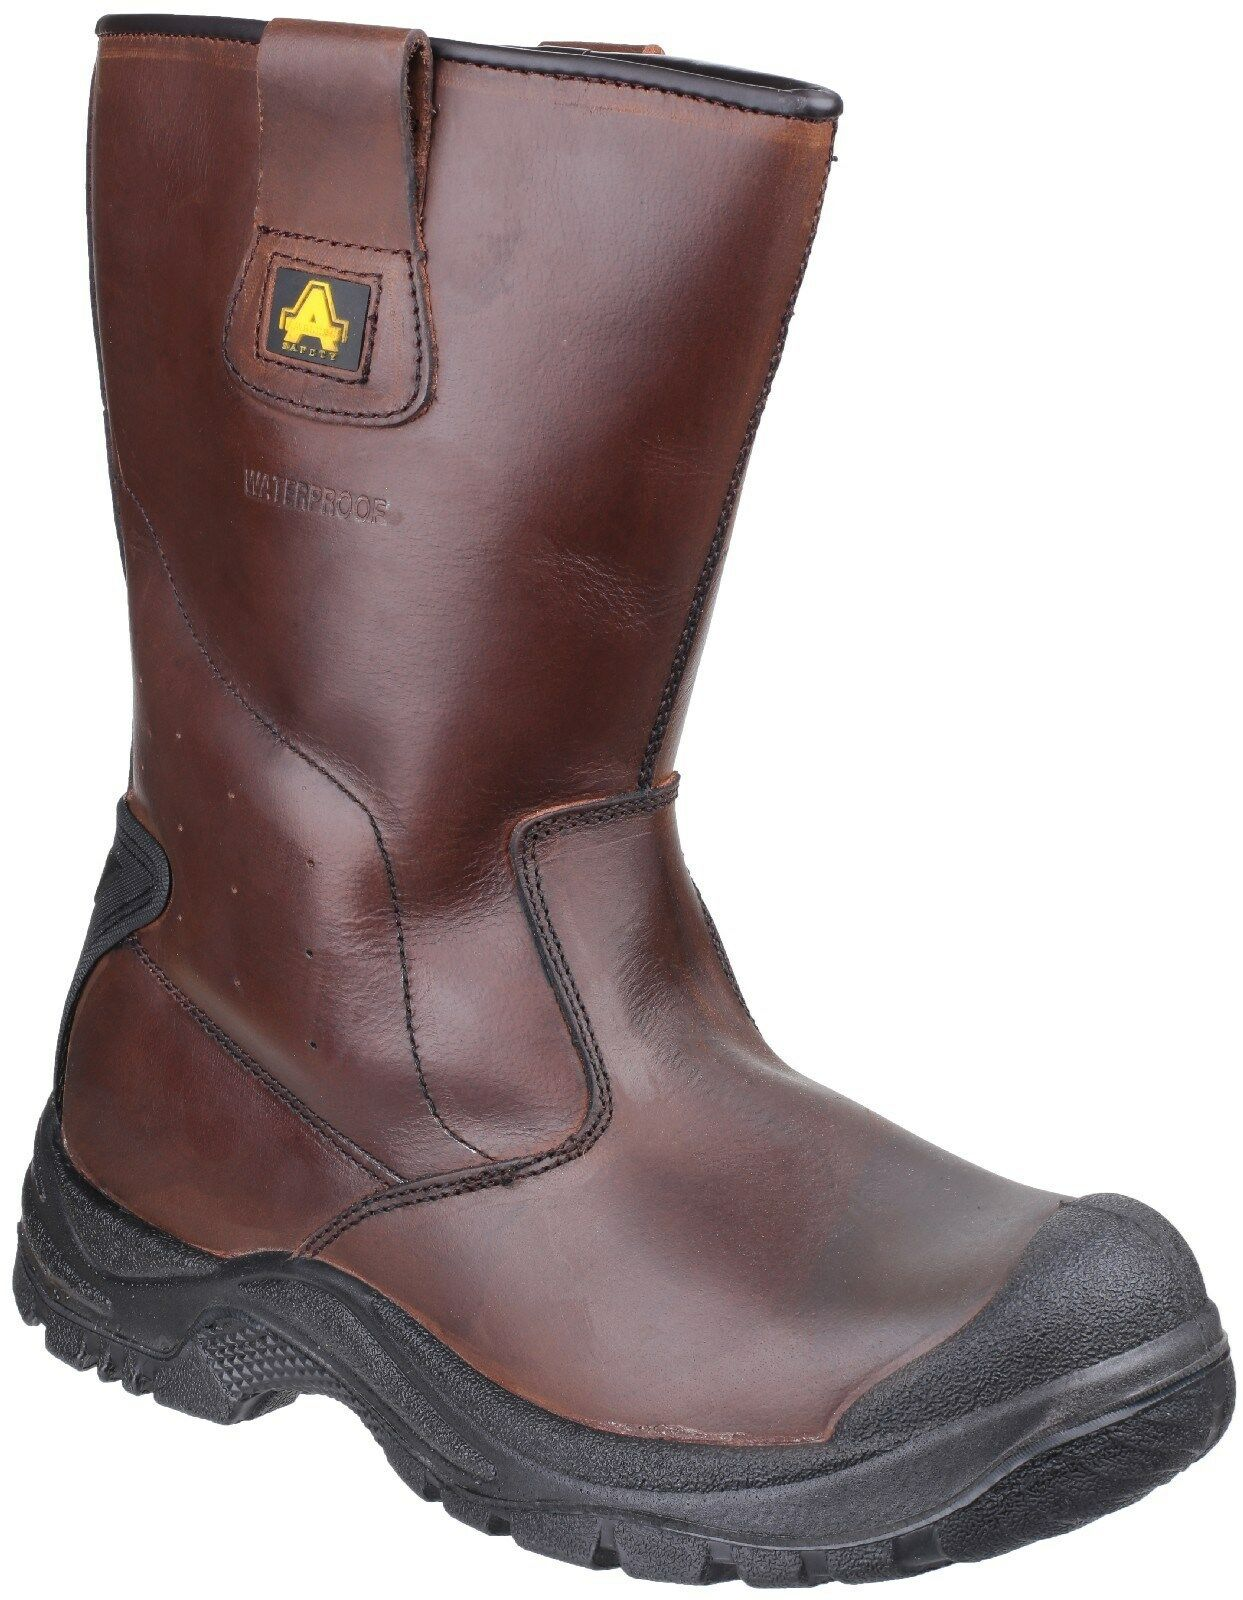 Amblers AS249 Cadair Safety Rigger Boots Mens Waterproof Steel Toe Cap Work shoes